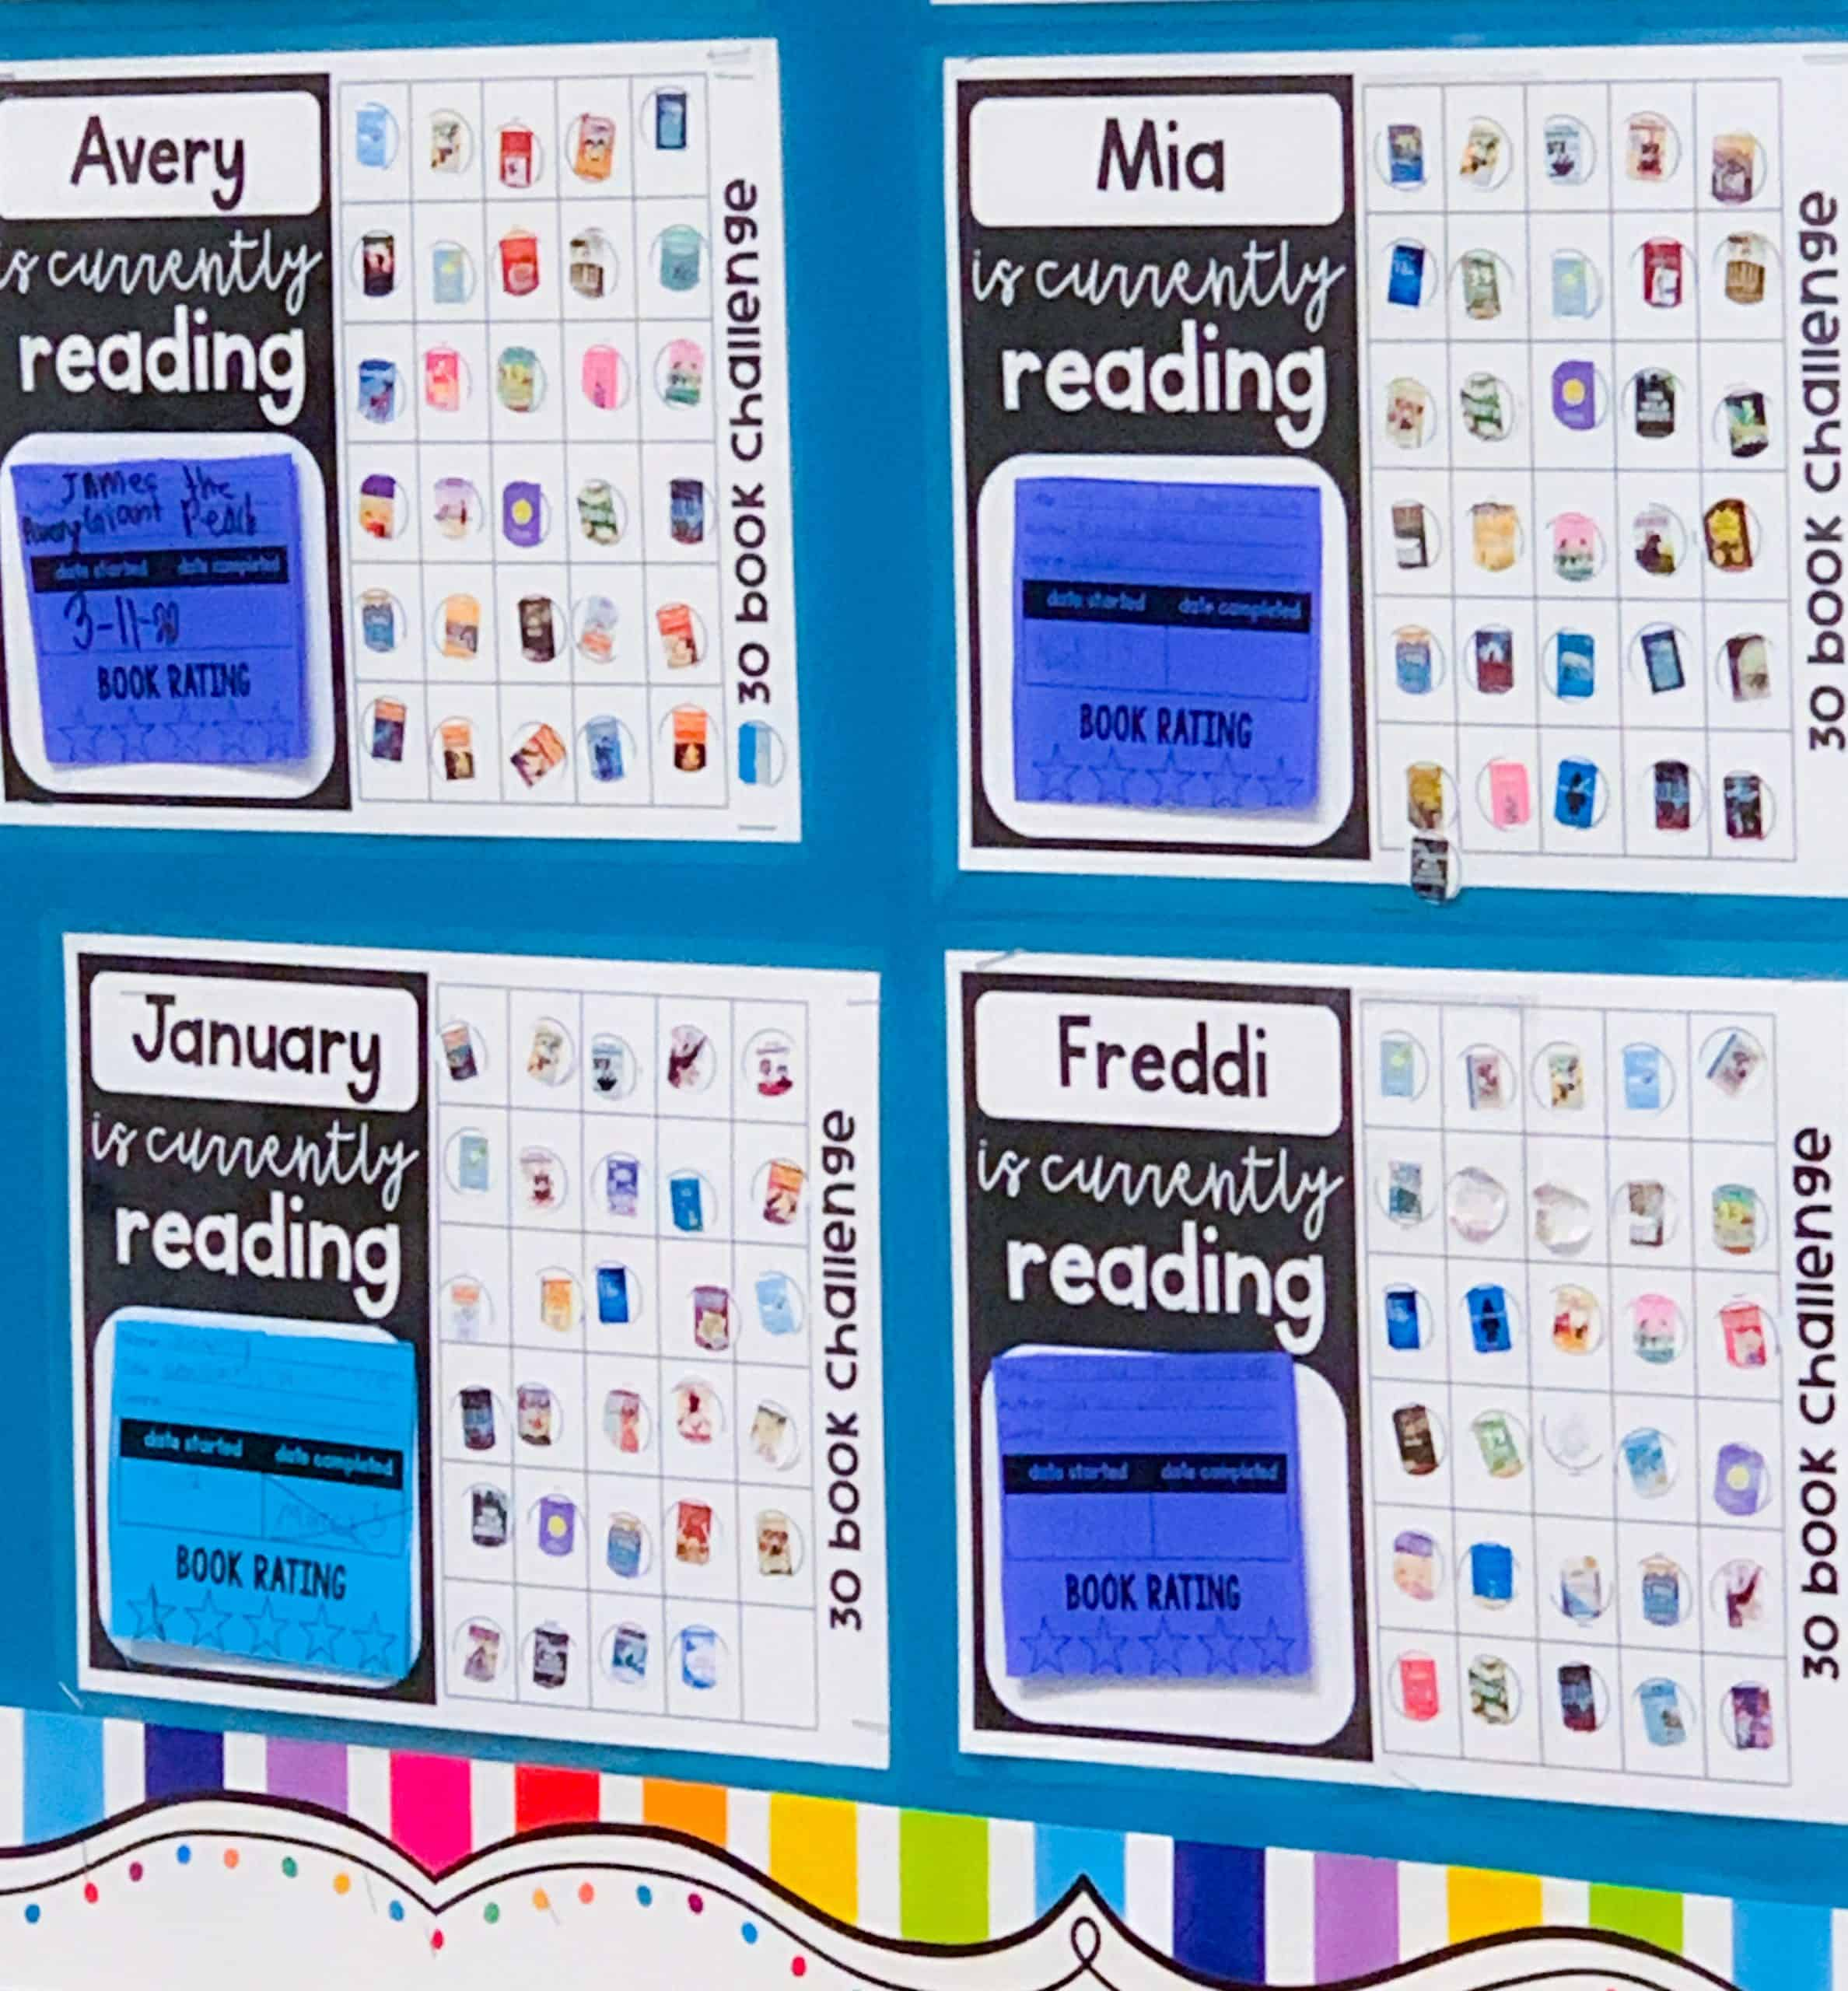 Grid-based accomplishment sheets to allow students to add round stickers to track reading accountability